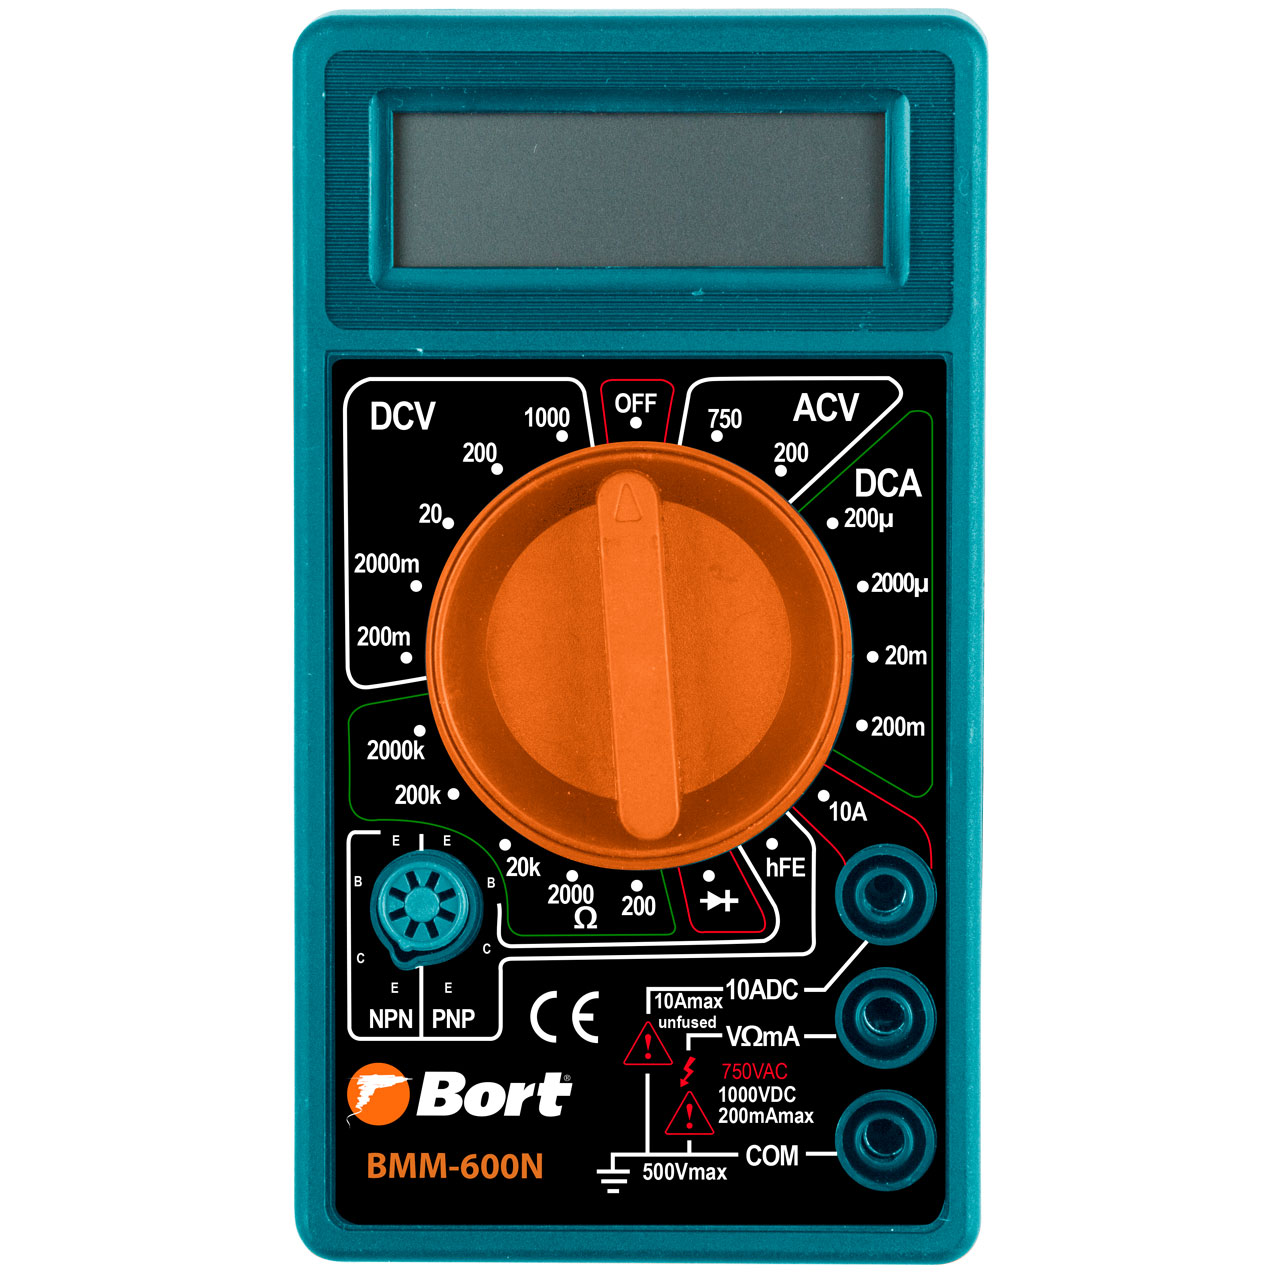 Bort AC DC LCD Digital Auto Multimeter Voltmeter Multimetro Ammeter Ohm Tester High Meter Safety Handheld Overload Protection BMM-600N